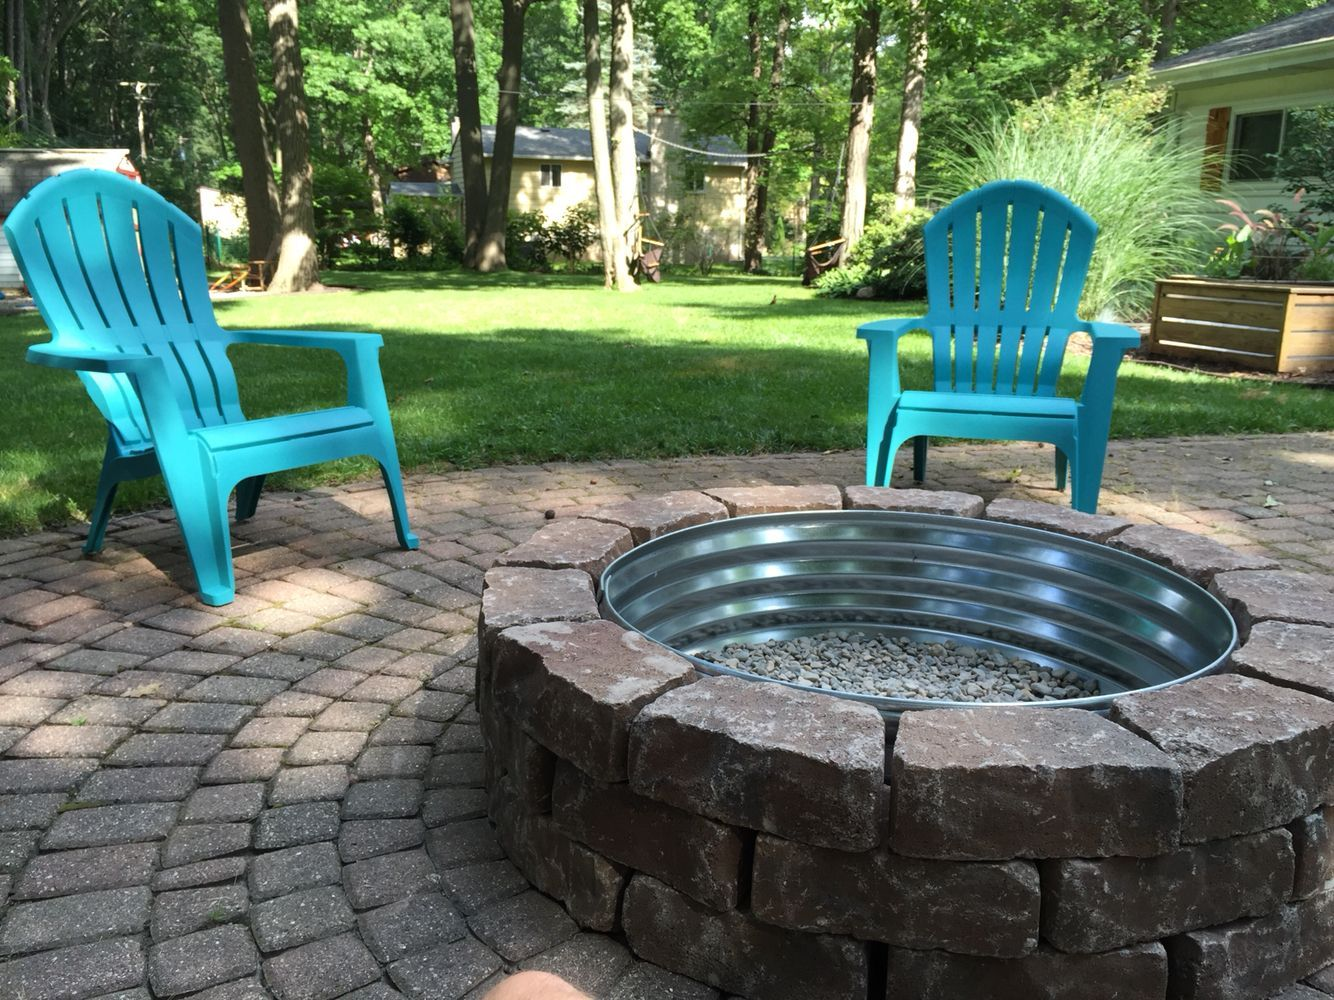 Backyard fire pit. Lowes paver bricks with Tractor Supply fire ring. - Backyard Fire Pit. Lowes Paver Bricks With Tractor Supply Fire Ring